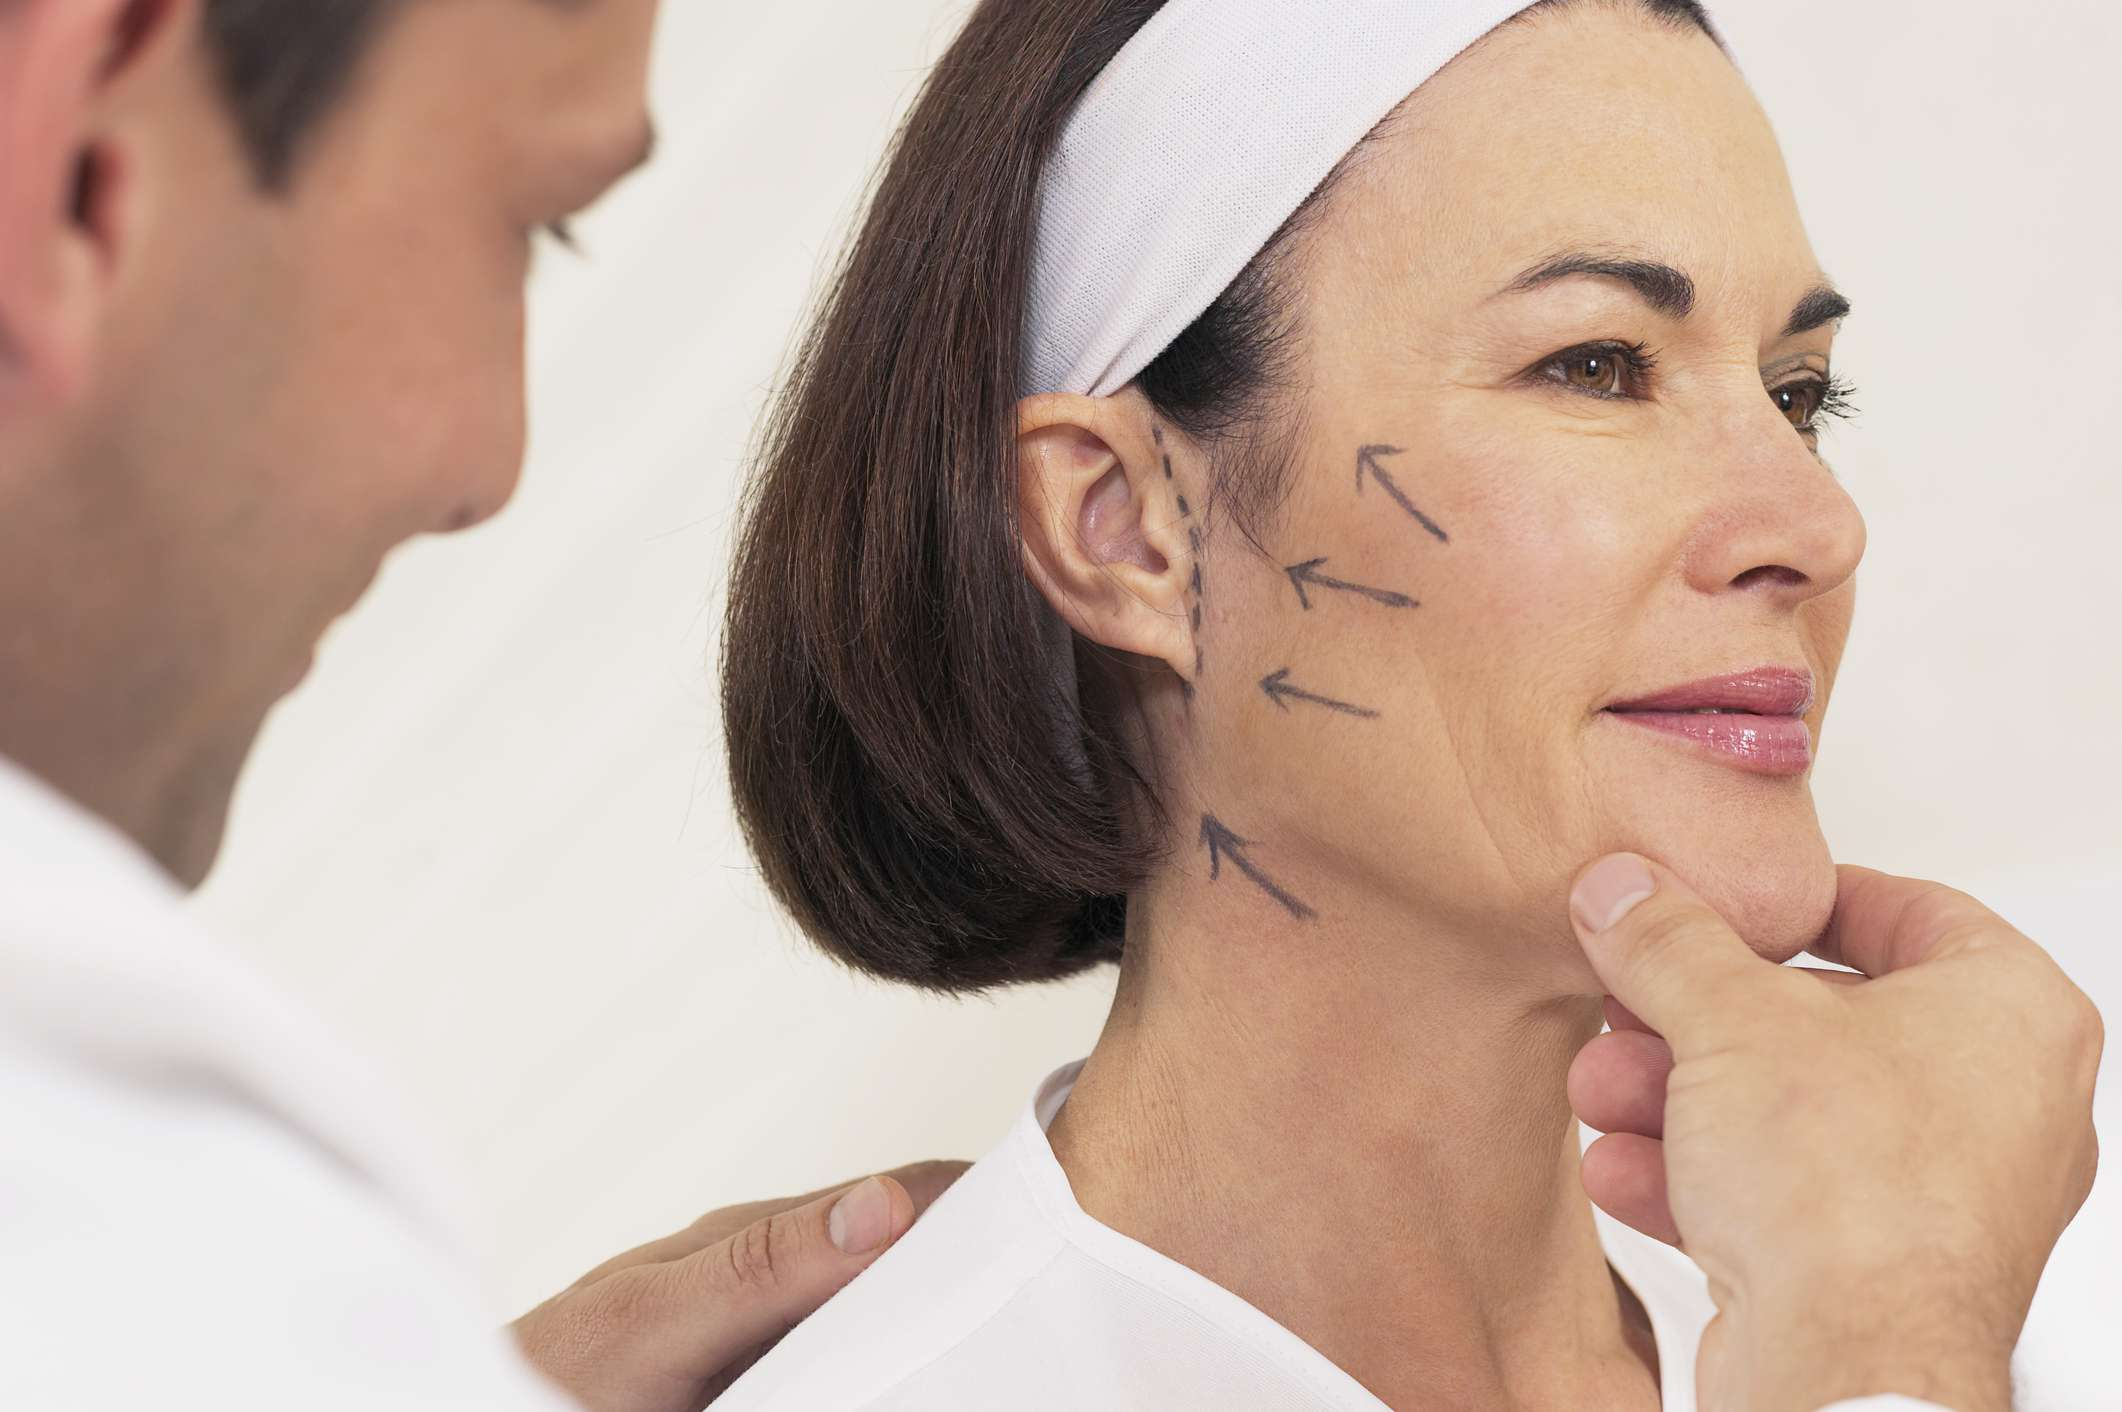 Helpful Advice To Know In Advance Of Cosmetic Surgery Procedures